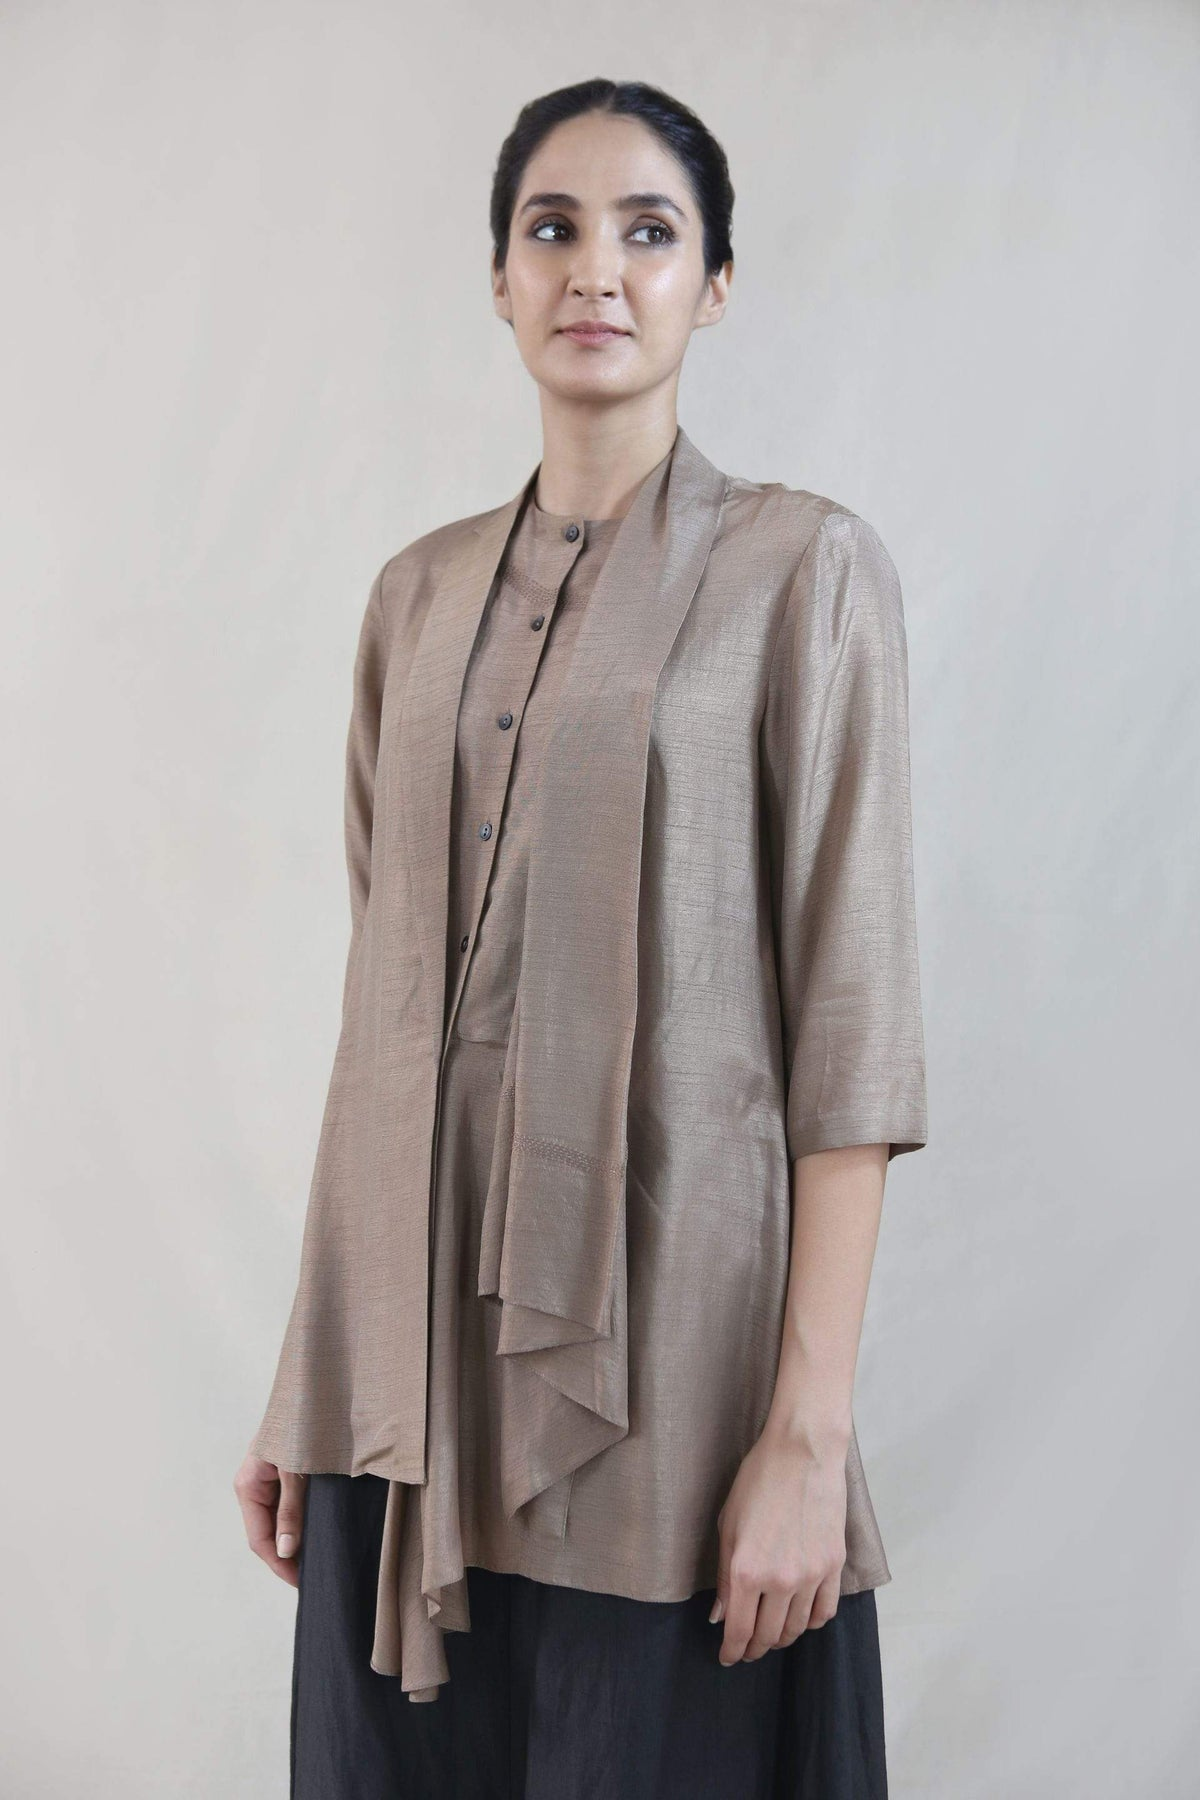 Integument Shirts & Tops Asymmetric blazer with kantha embroidery